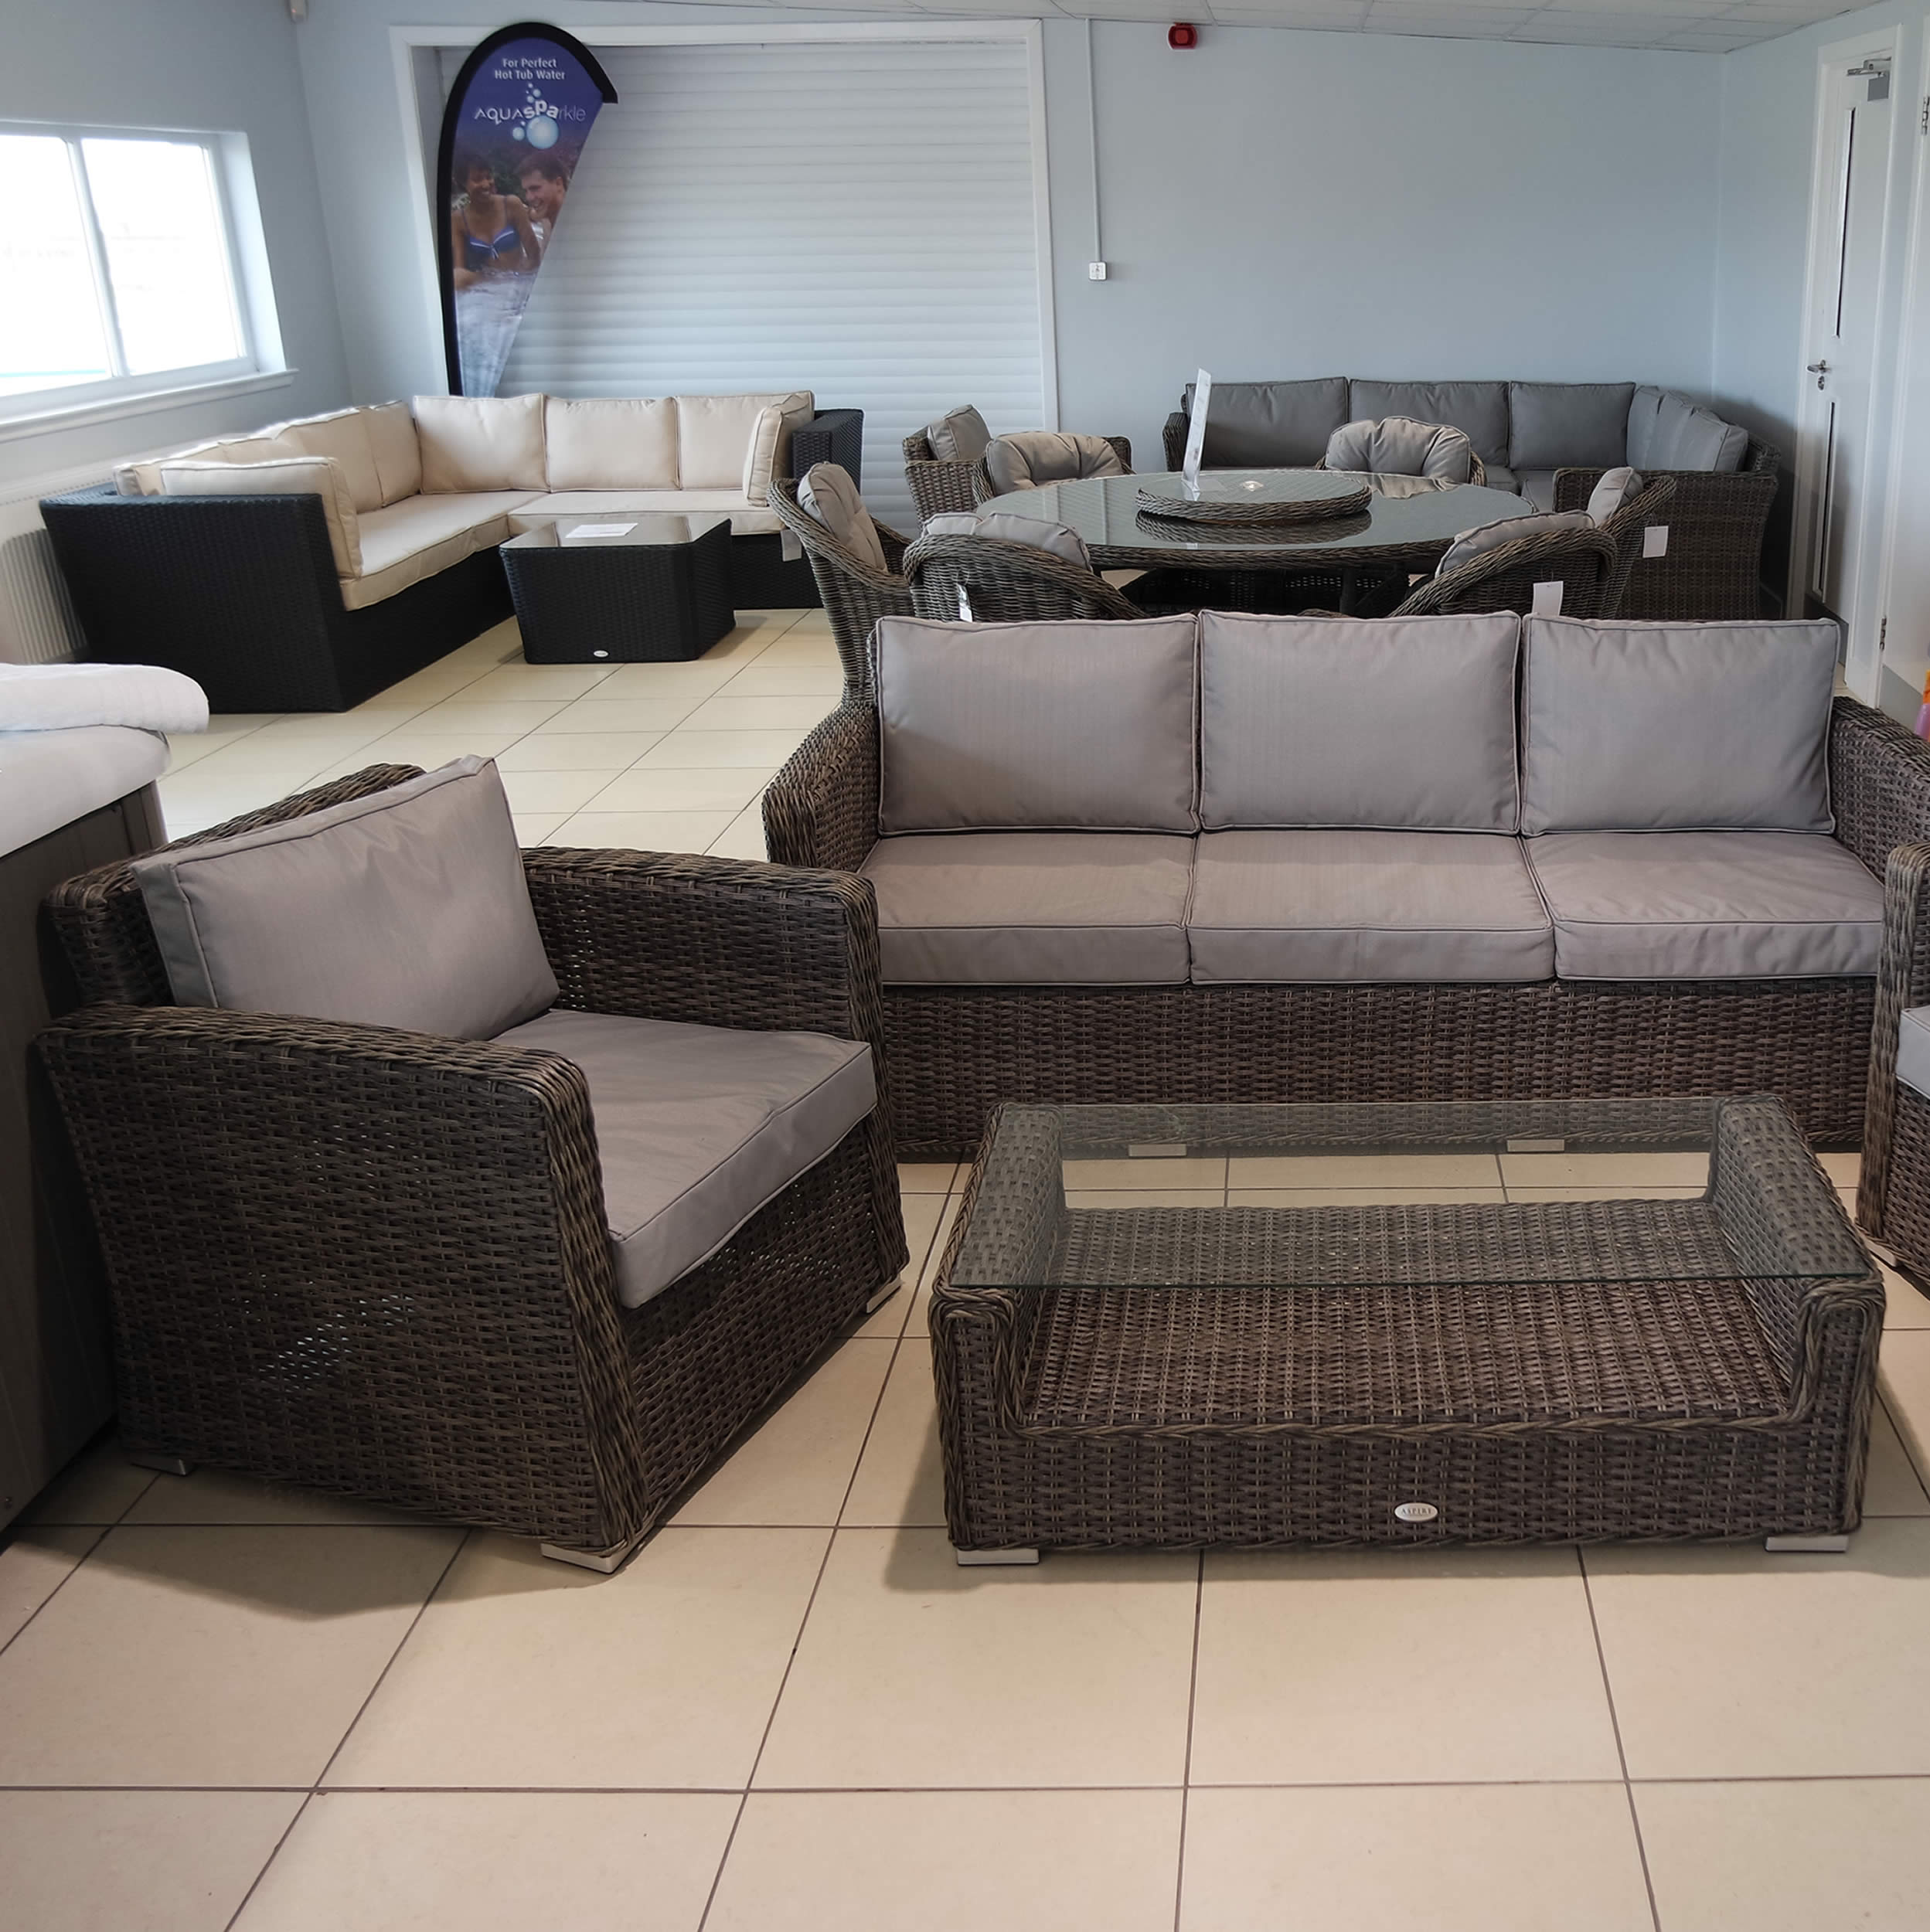 Quality garden furniture solway outdoors for Quality garden furniture